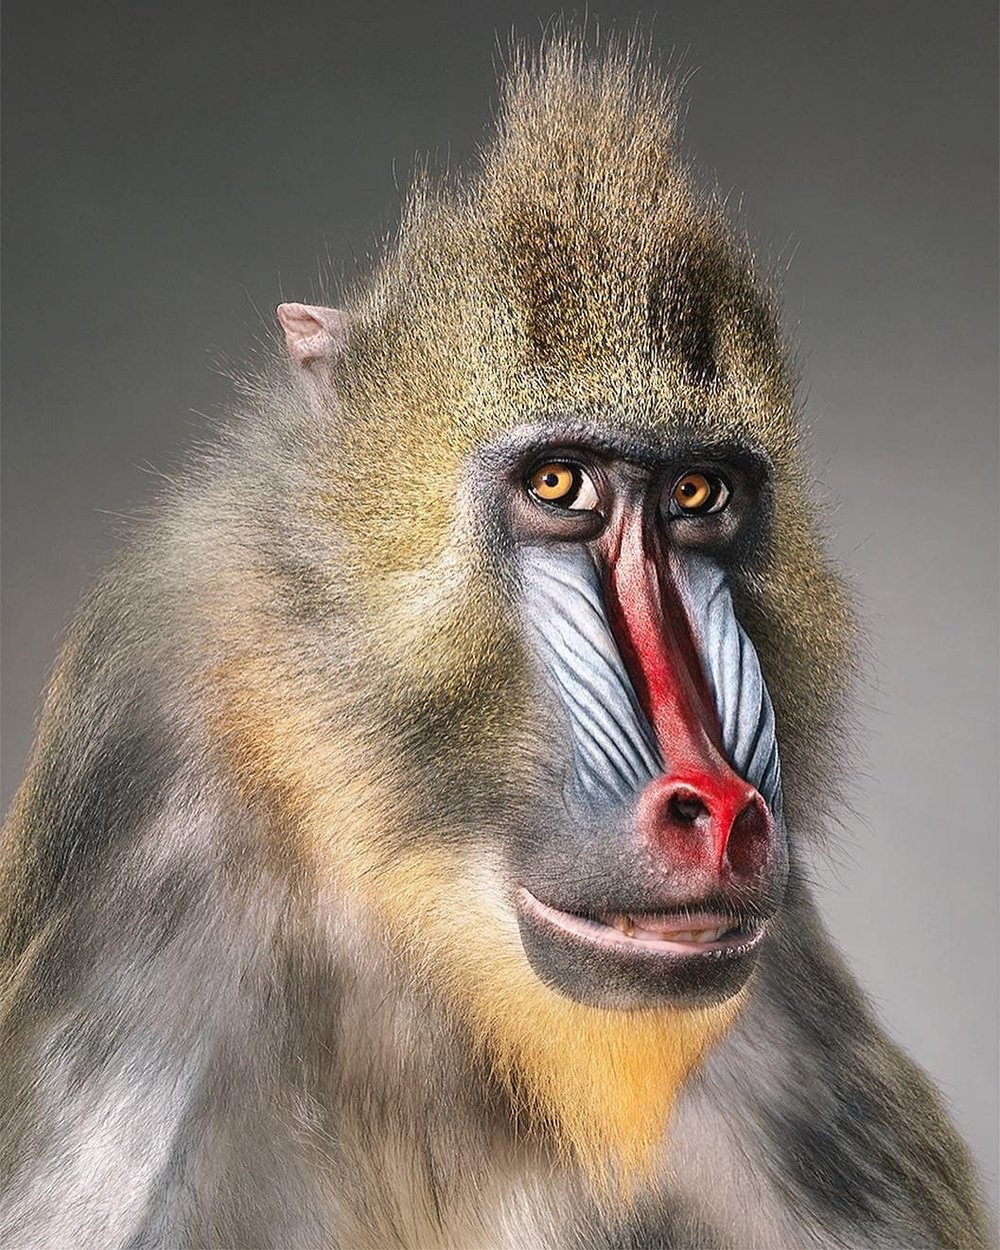 """Mandrills form the largest social groups of any non-human primate, with a troop of 1,300 once recorded in the forests of Gabon. With their striking faces and eyes, they have evolved some of the most spectacular colouration of any mammalian species, the intensity of which signifies their social and sexual status. Sadly, it is not just their appearance that is appealing; mandrill meat is considered a delicacy in West Africa, and it is part of a growing trade, with tons of bush meat being smuggled into western Europe every week. Logging and farming are limiting their places of refuge, and these remarkable animals are in urgent need of stronger protections."" Tim Flach"